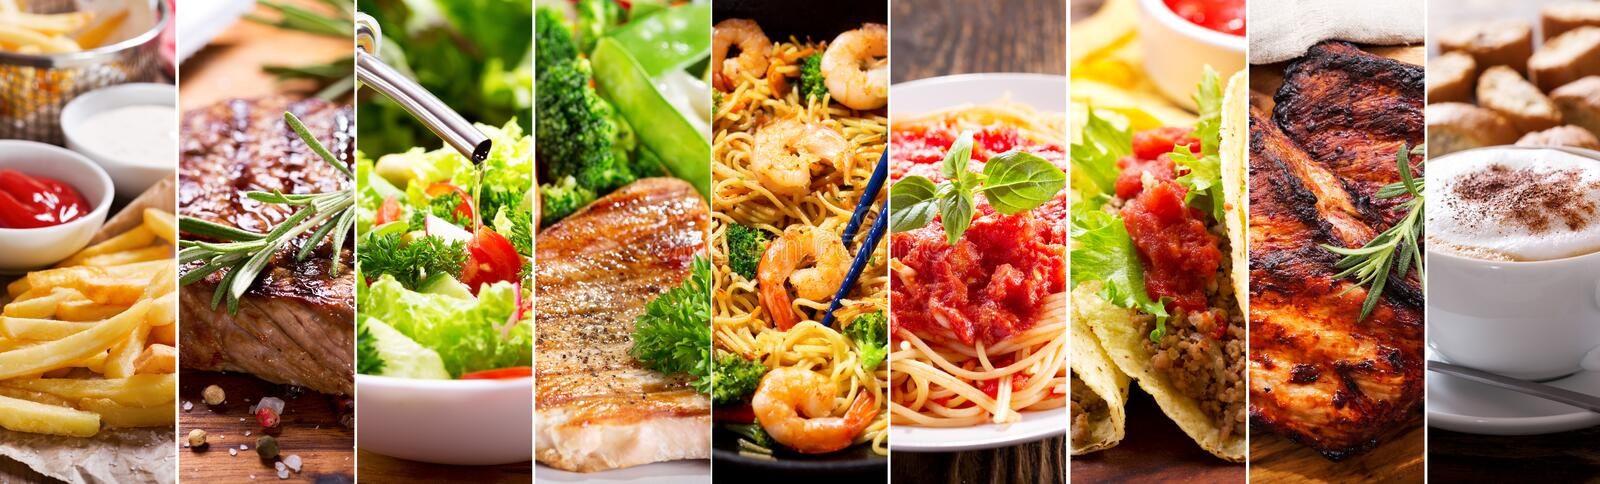 Collage of food products royalty free stock images